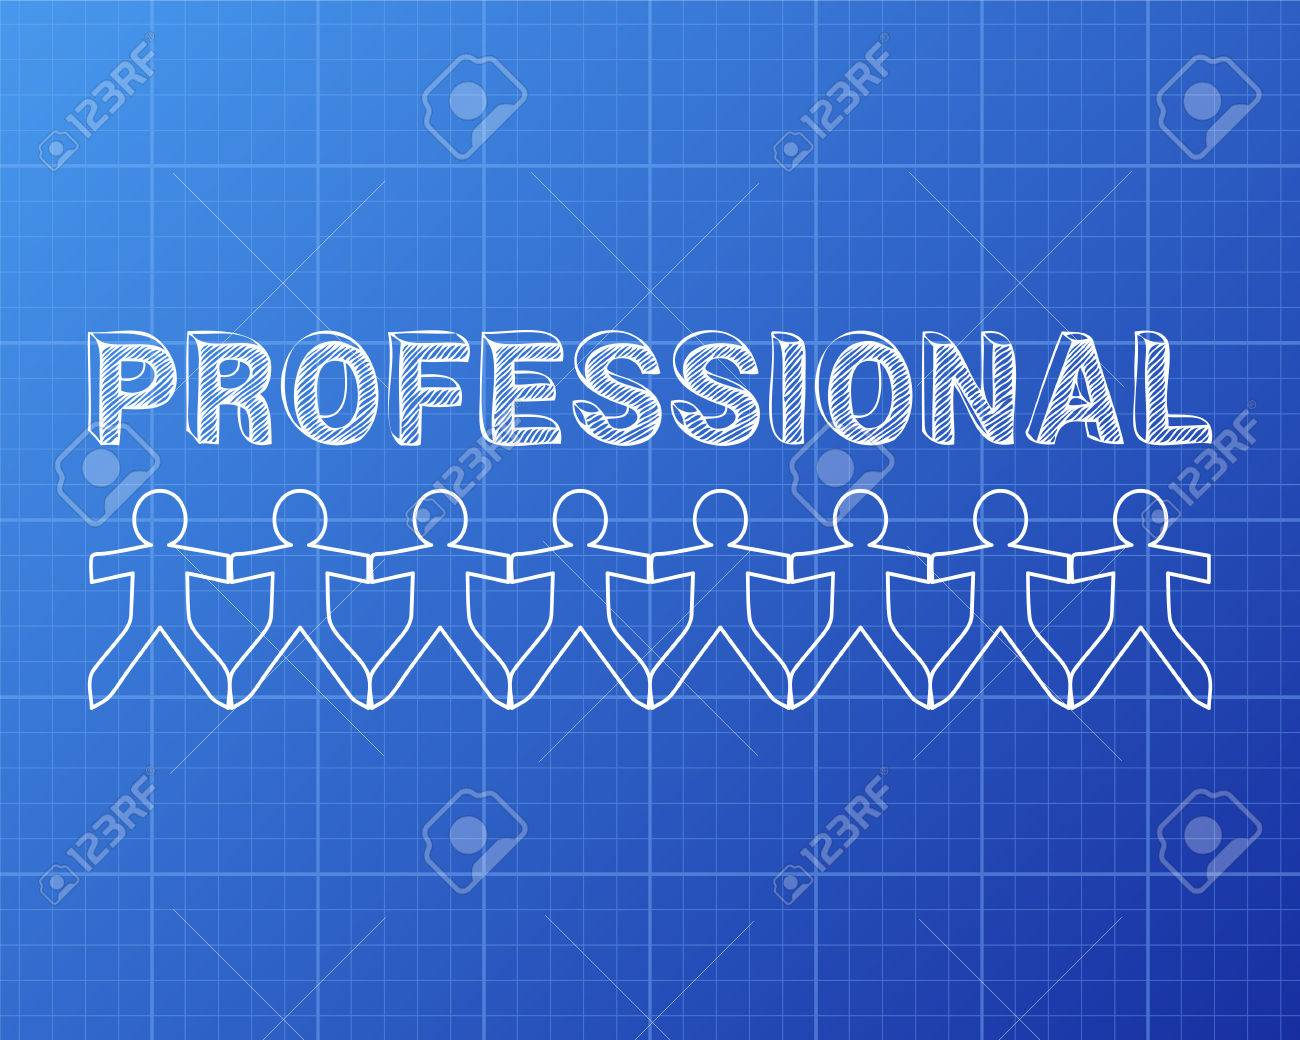 Professional text hand drawn with paper people on blueprint professional text hand drawn with paper people on blueprint background archivio fotografico 79824388 malvernweather Choice Image